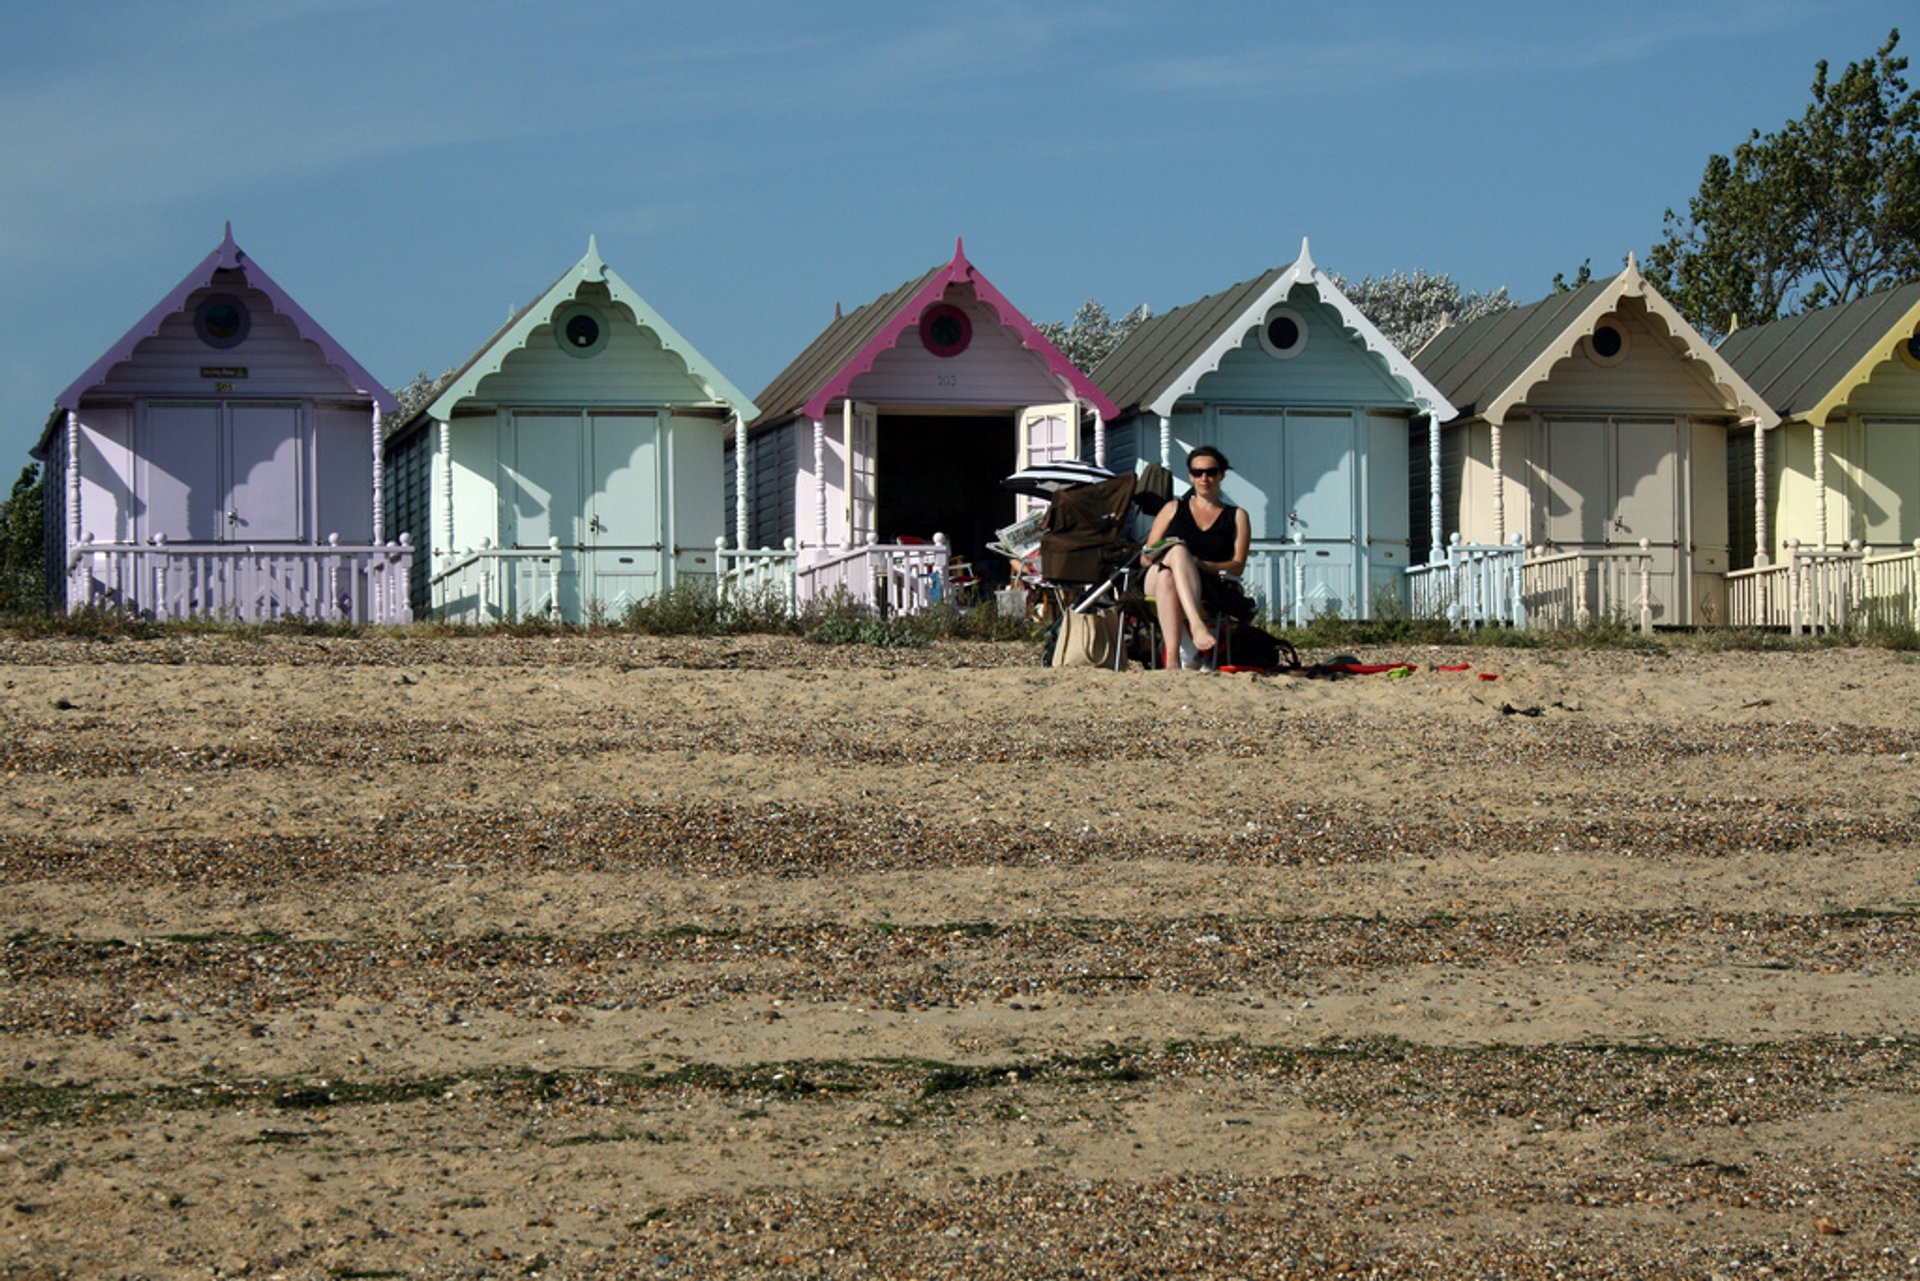 West Mersea Beach in Essex 2020